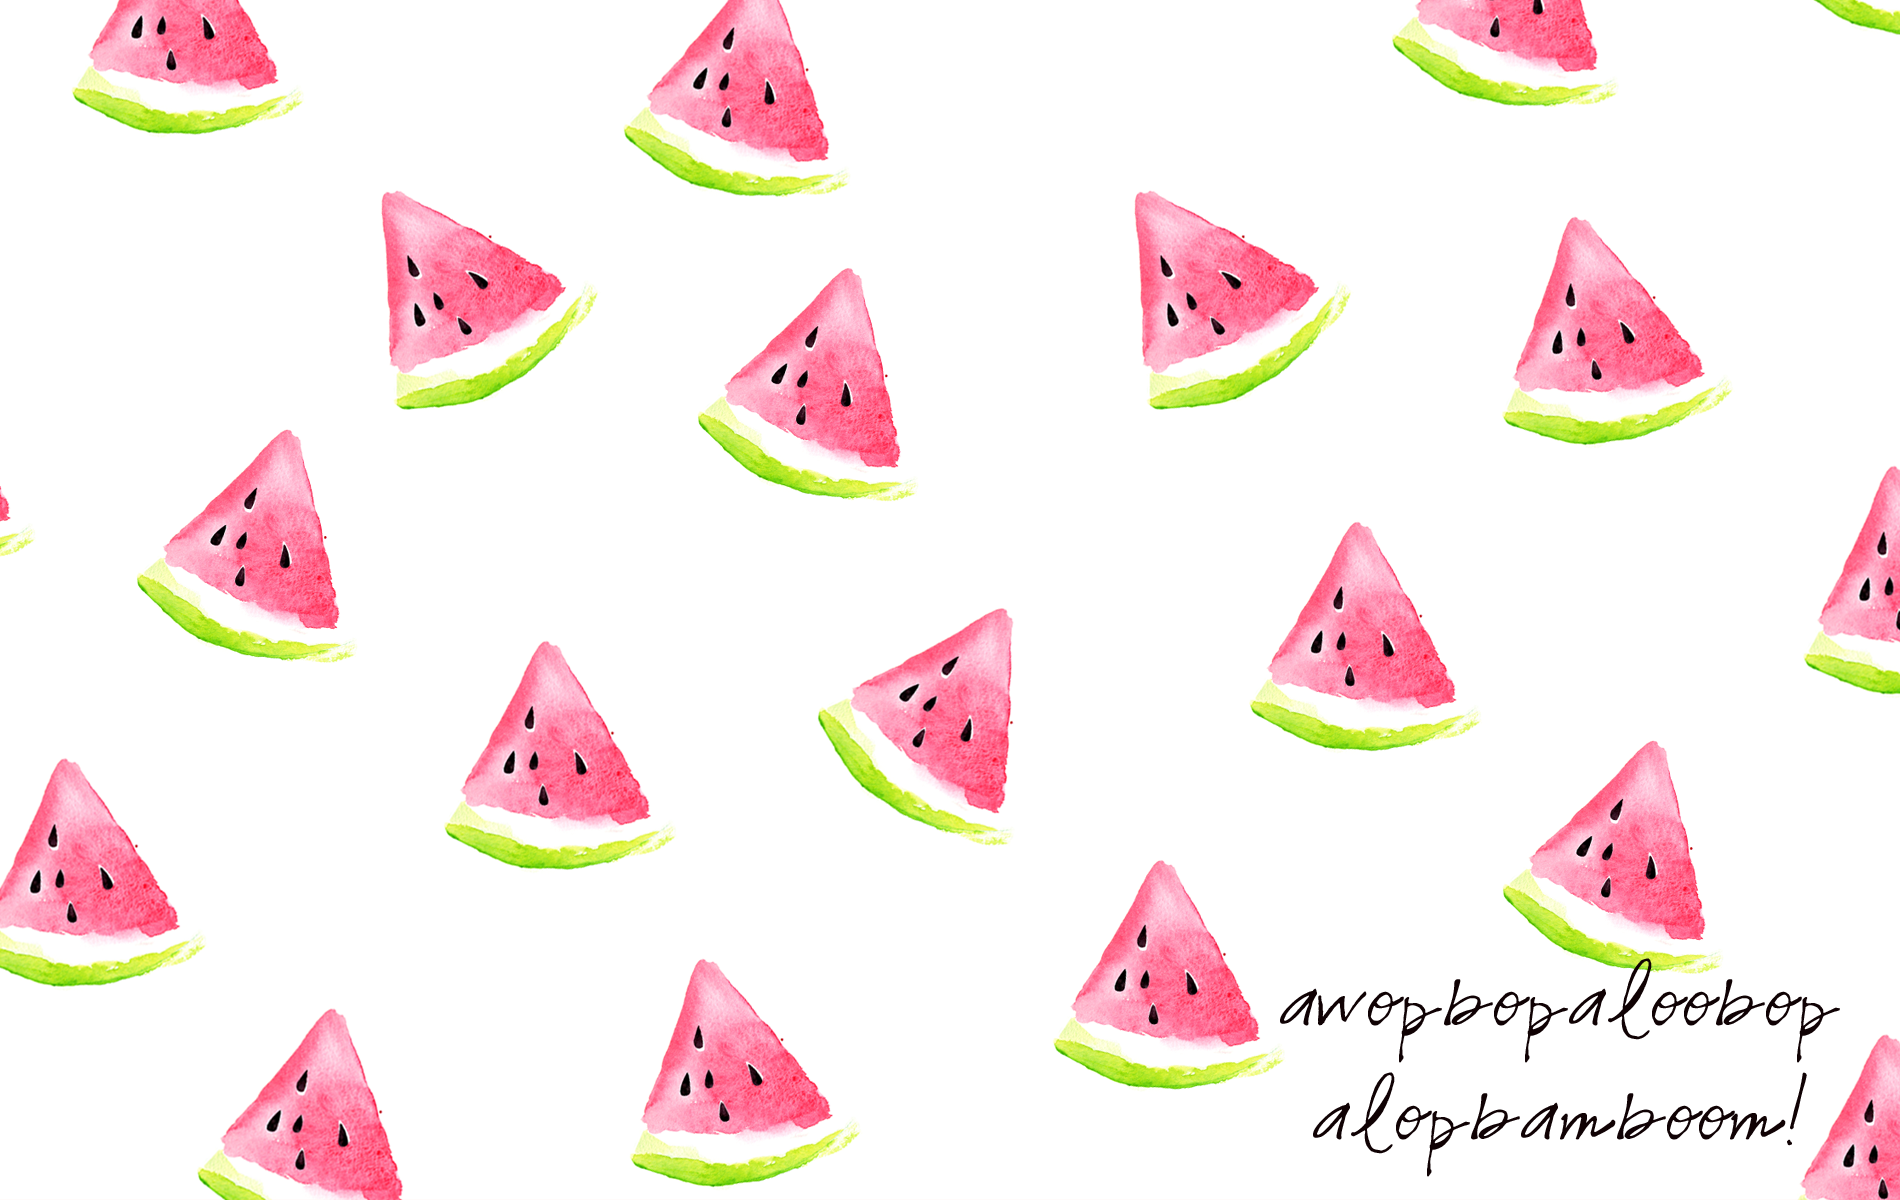 Watermelon Wallpaper by Sonny Badon, BsnSCB Graphics | Food and Drink HQ Definition